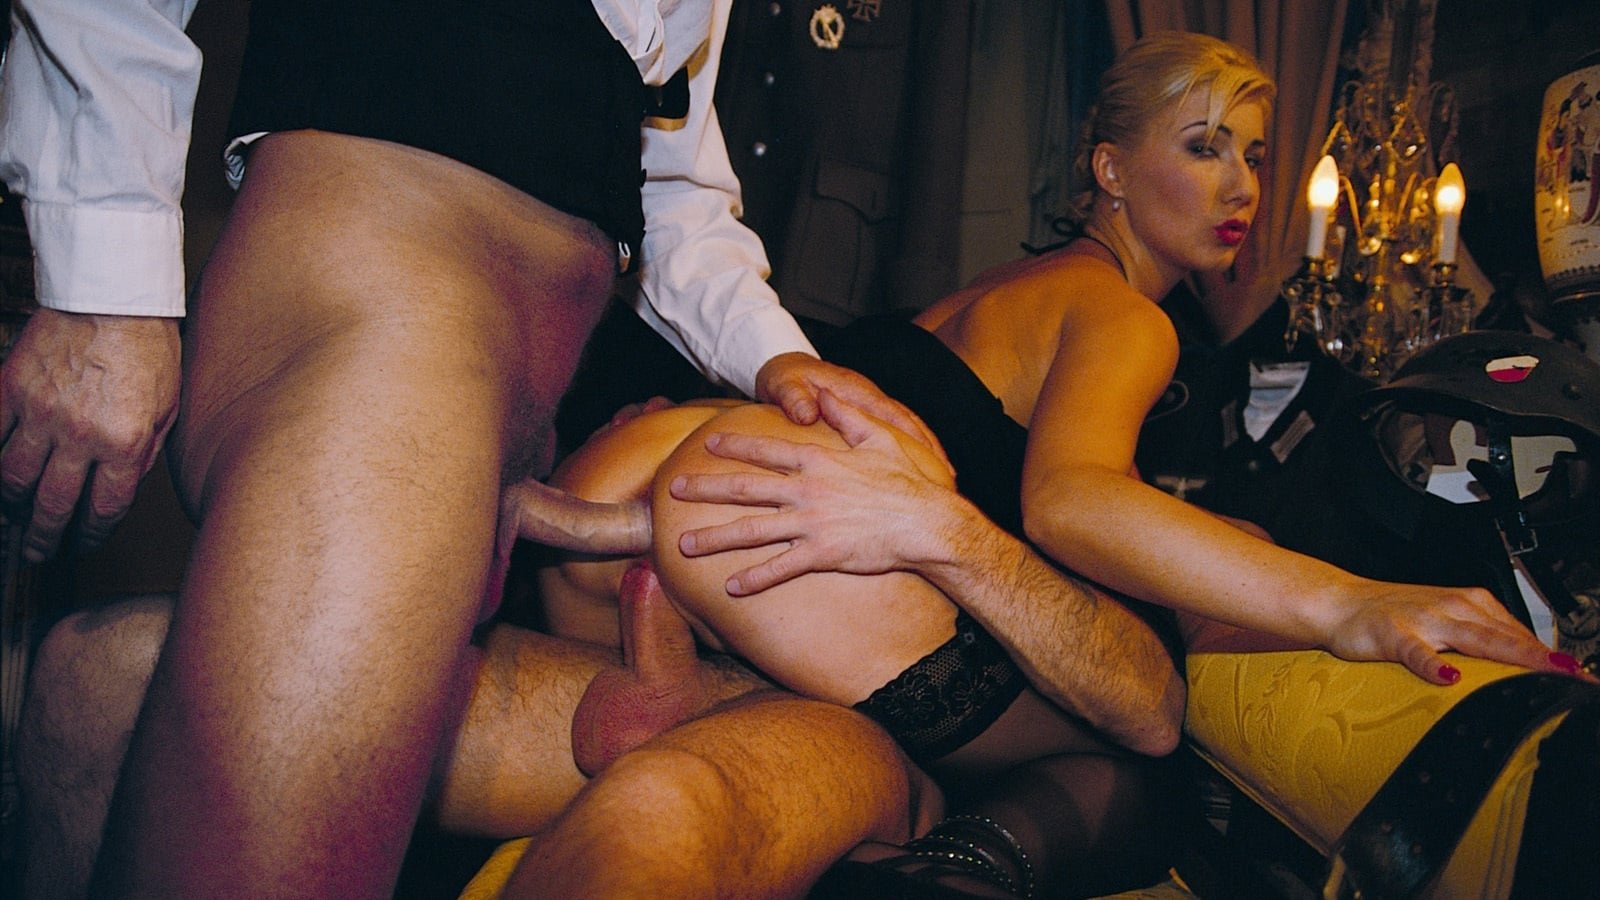 Rich woman sex, pussy insertion granny